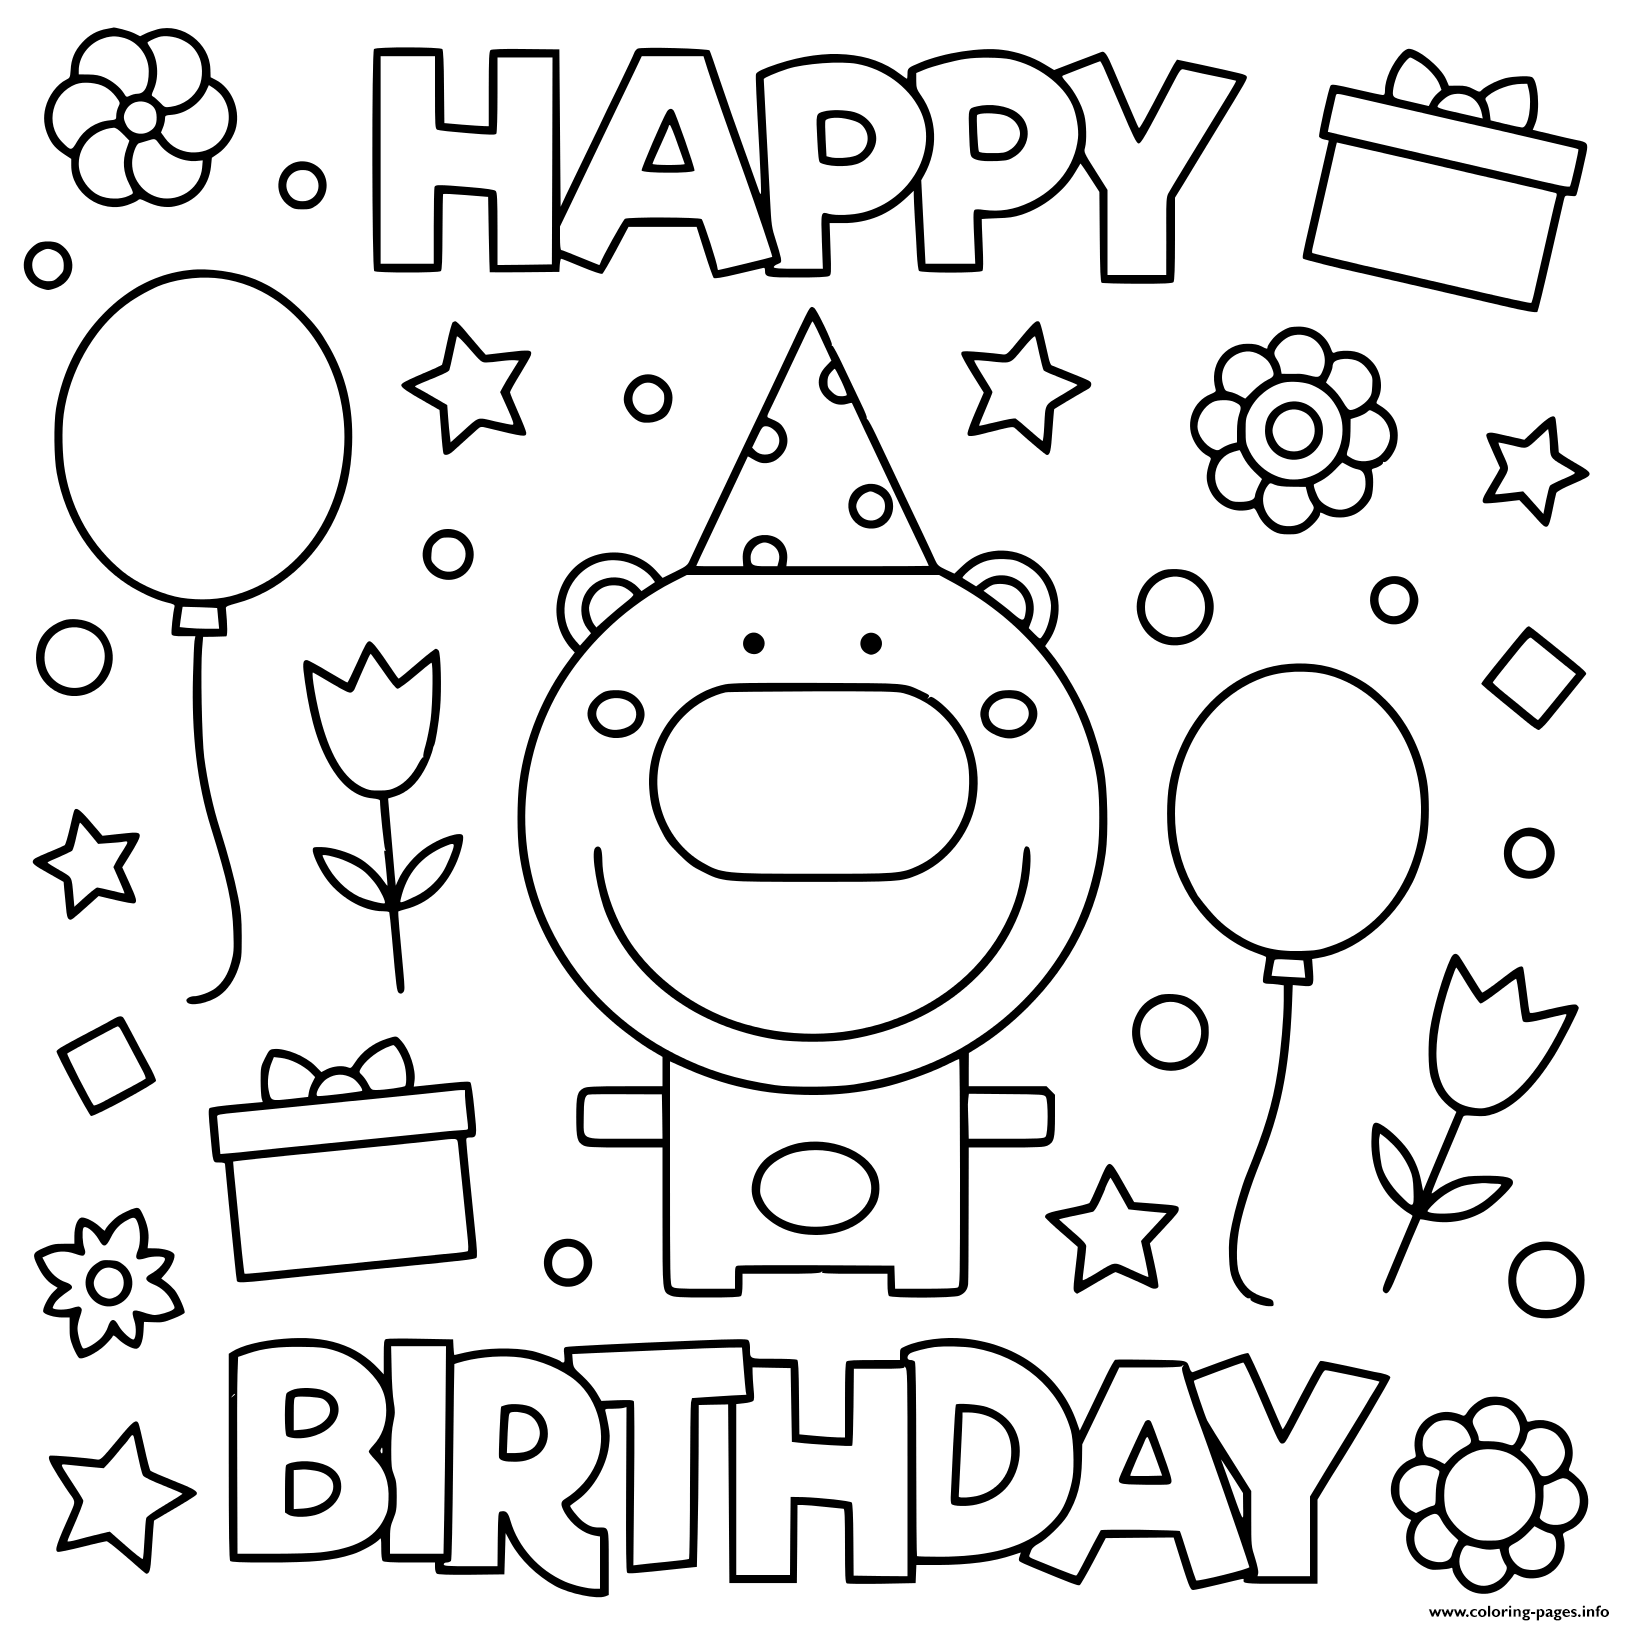 Happy Birthday Coloring Pictures To Print Books For Kids Online Free Sheets  Printable Pagesdults – Slavyanka